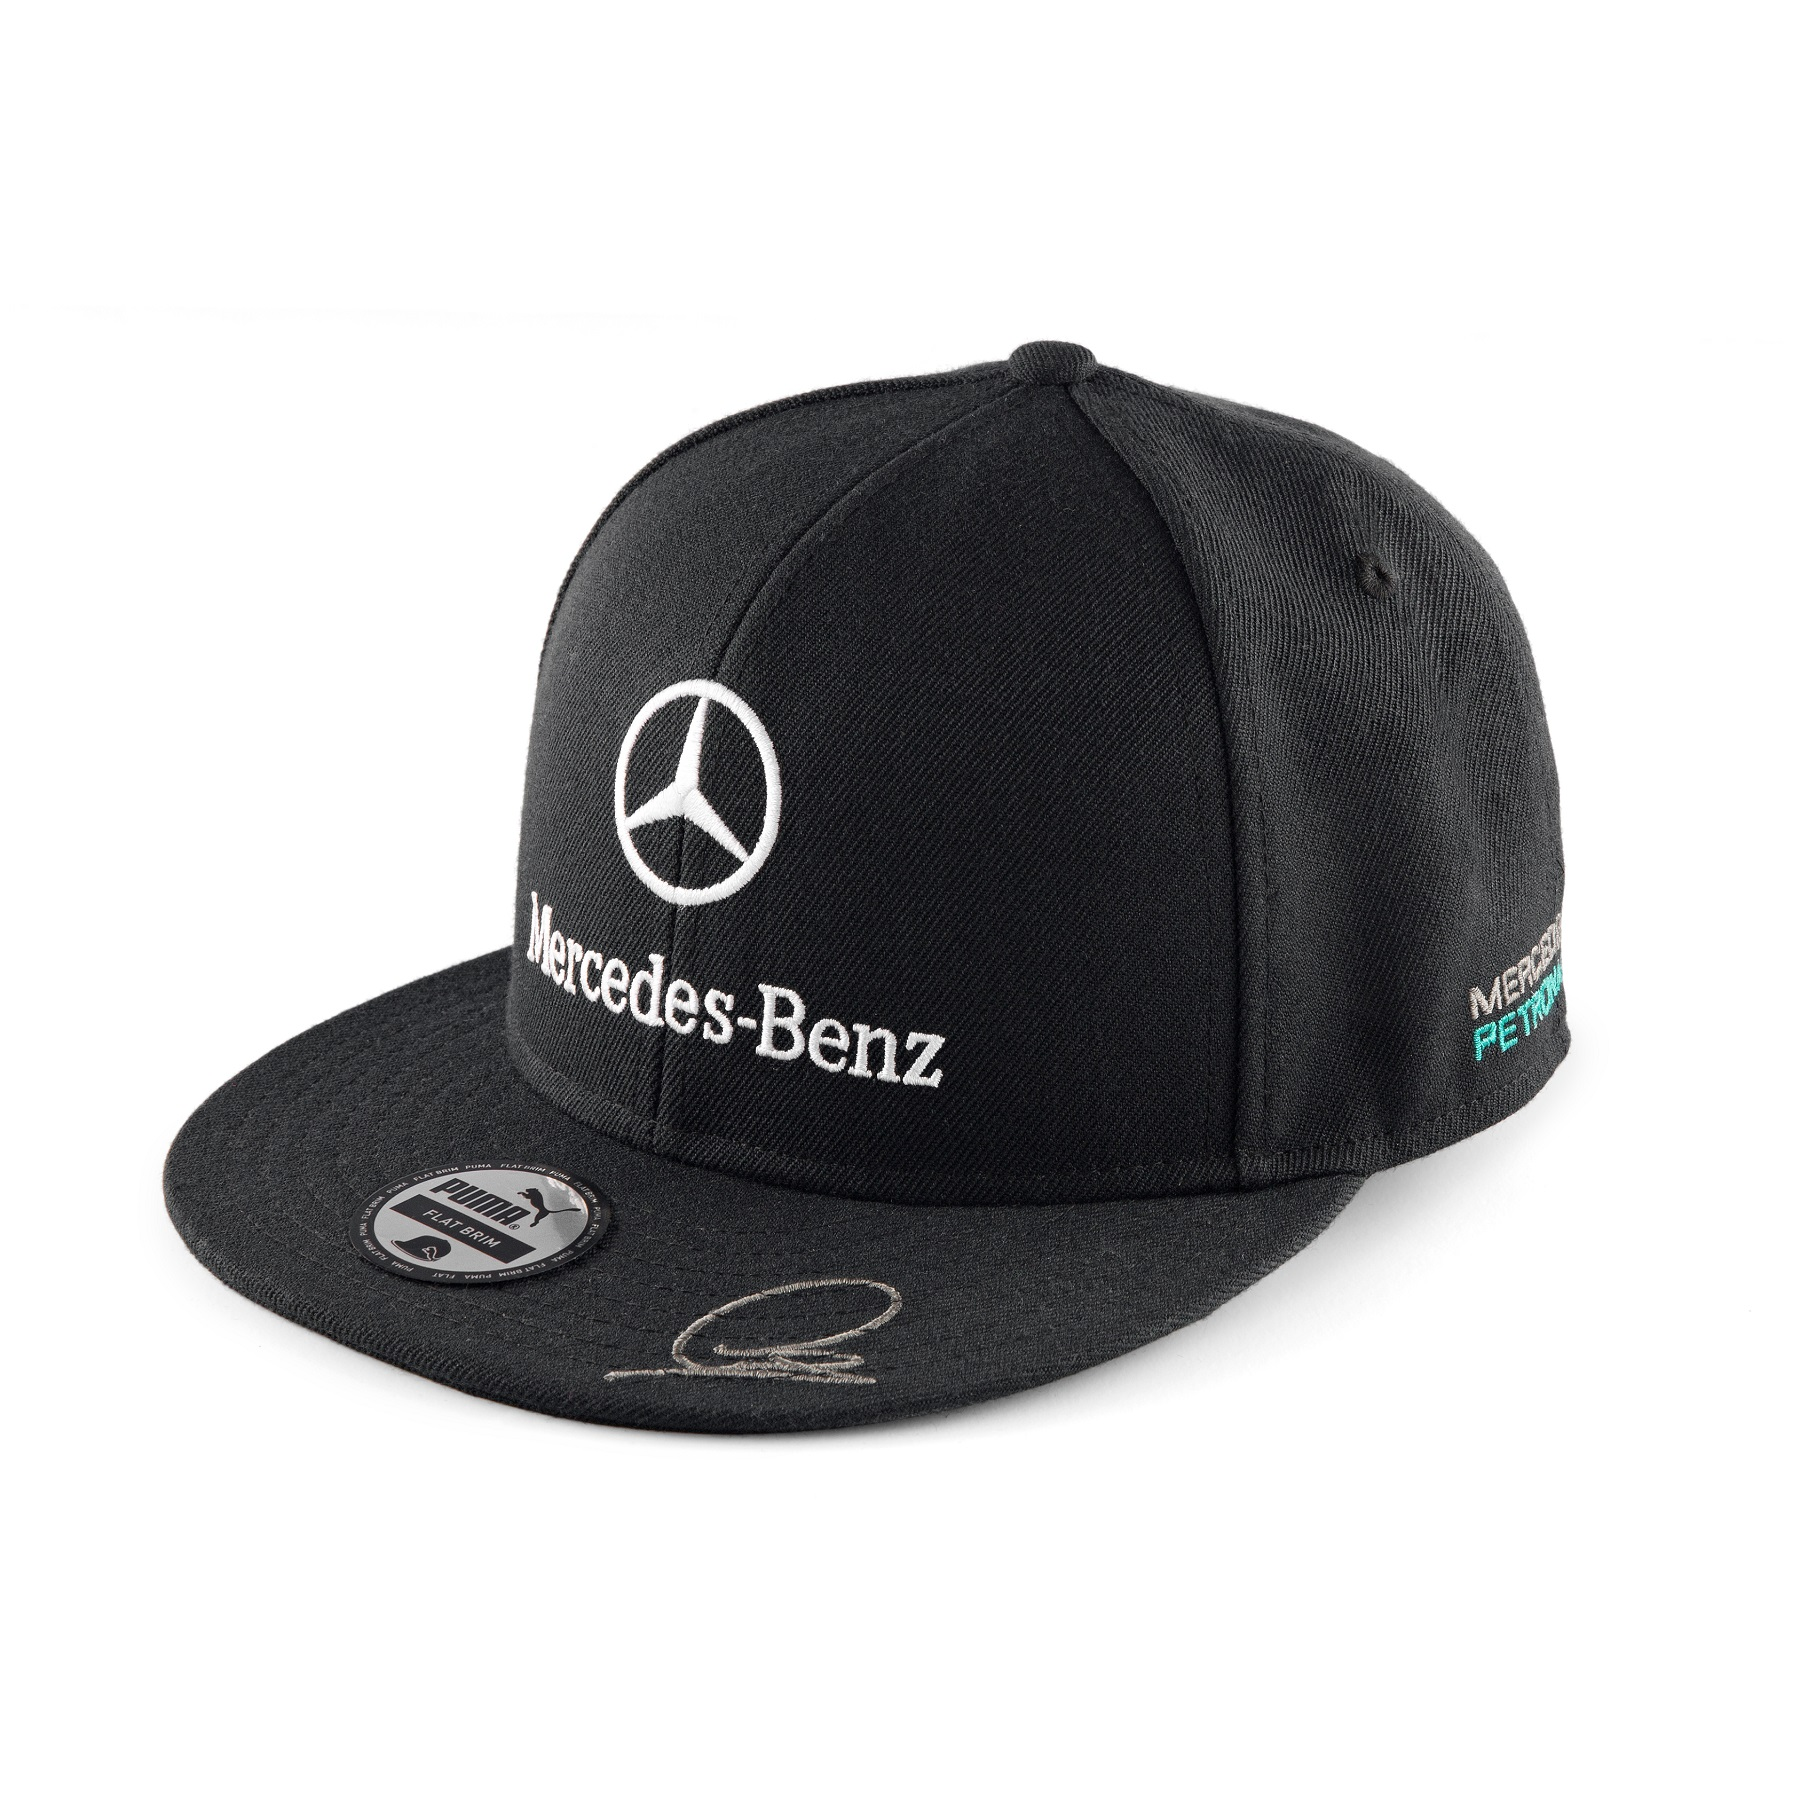 2014 lewis hamilton puma flat brim cap mercedes benz amg. Black Bedroom Furniture Sets. Home Design Ideas